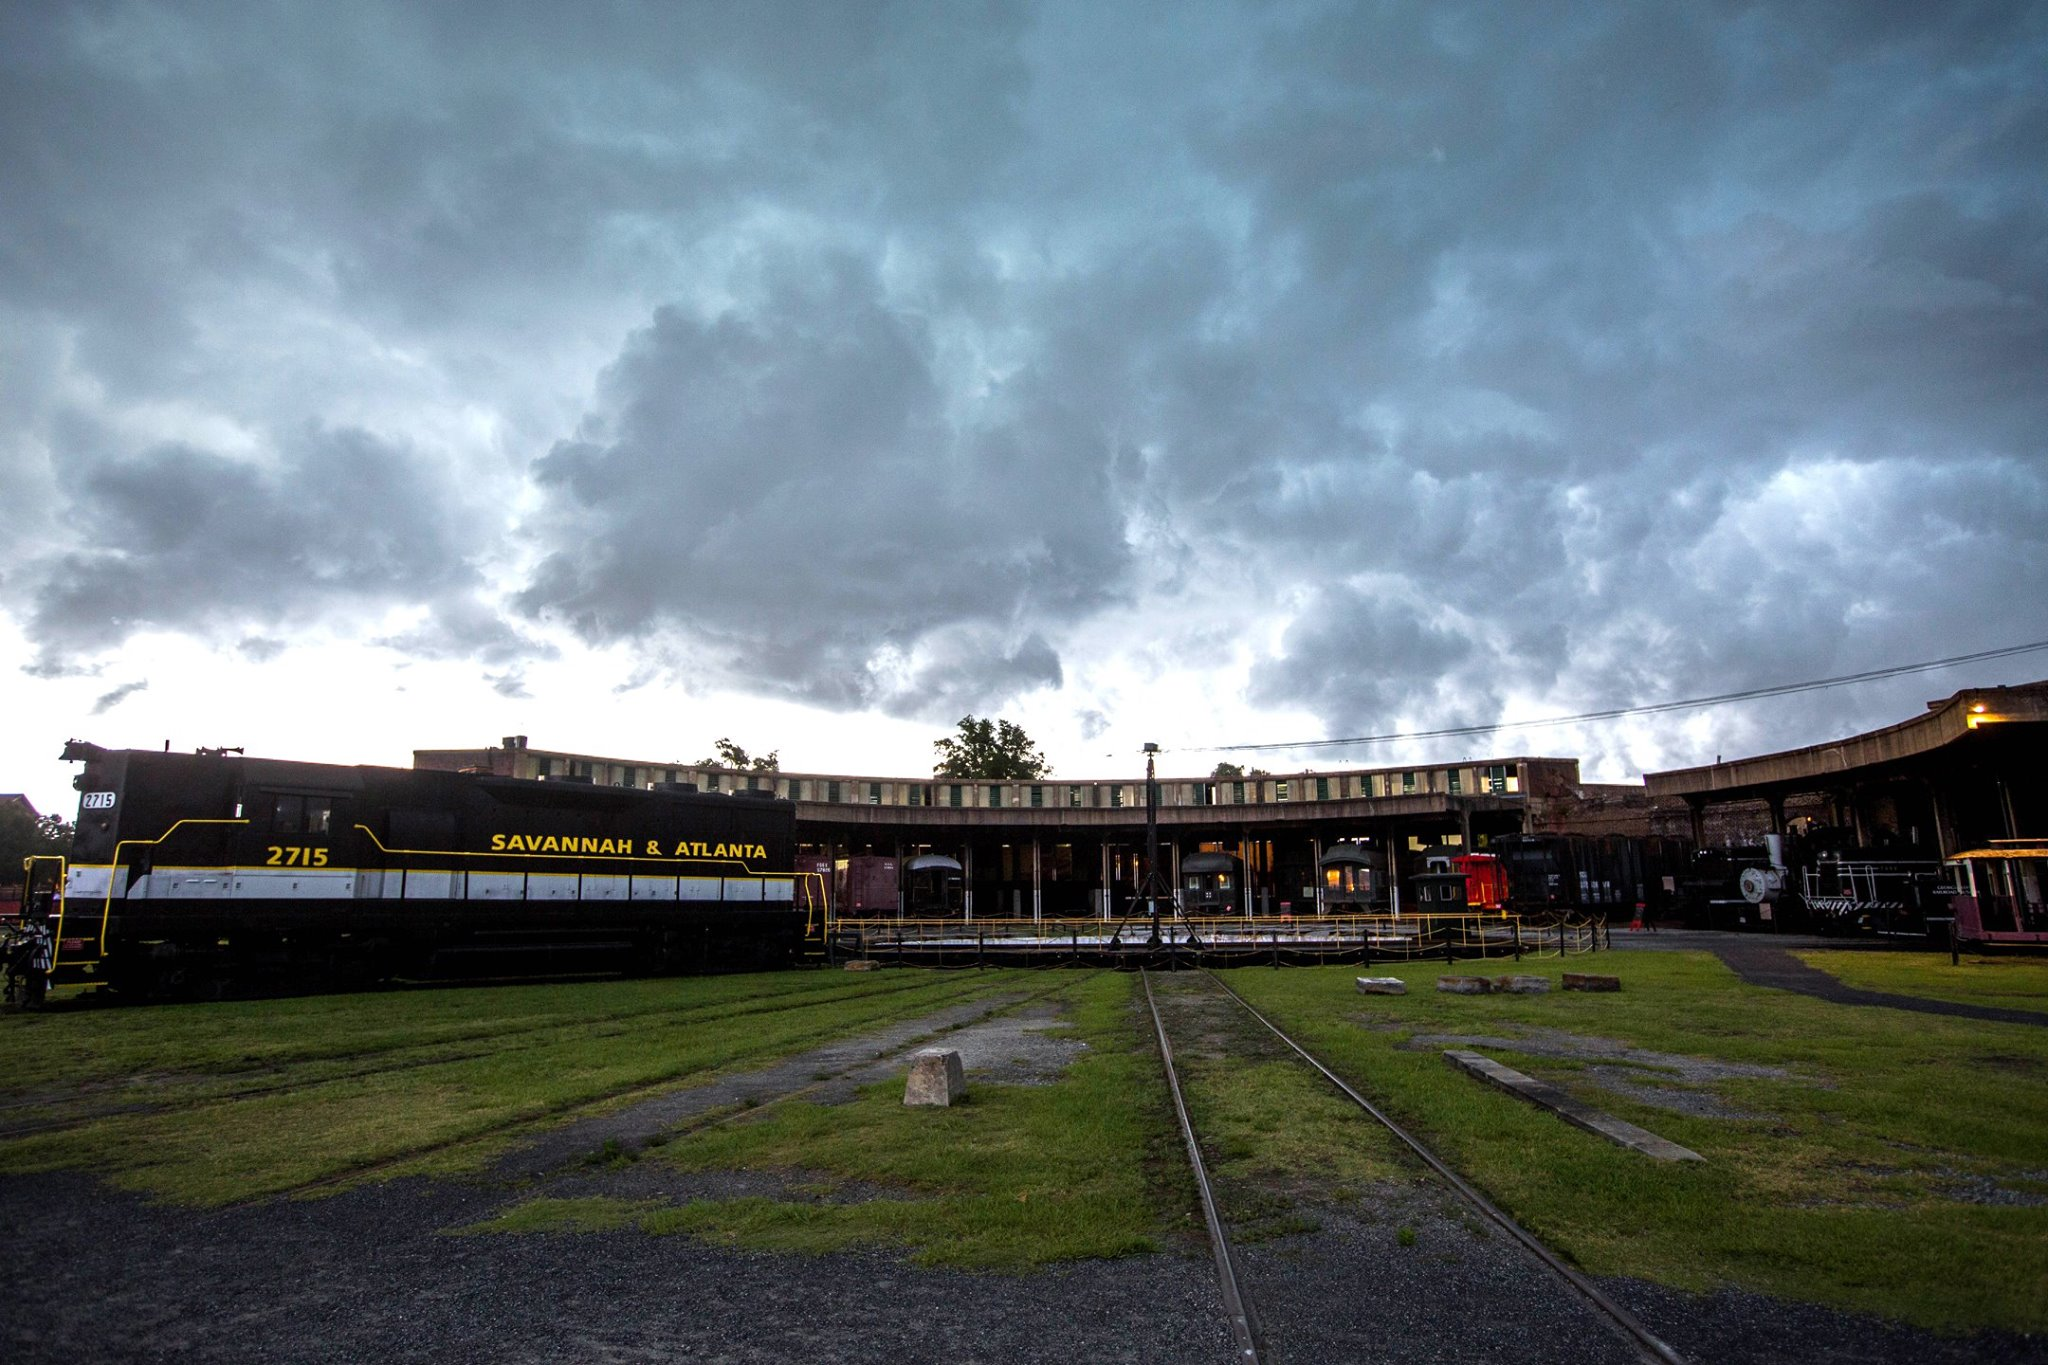 Georgia State Railroad Musuem Roundhouse Photo by Rich Burkhart